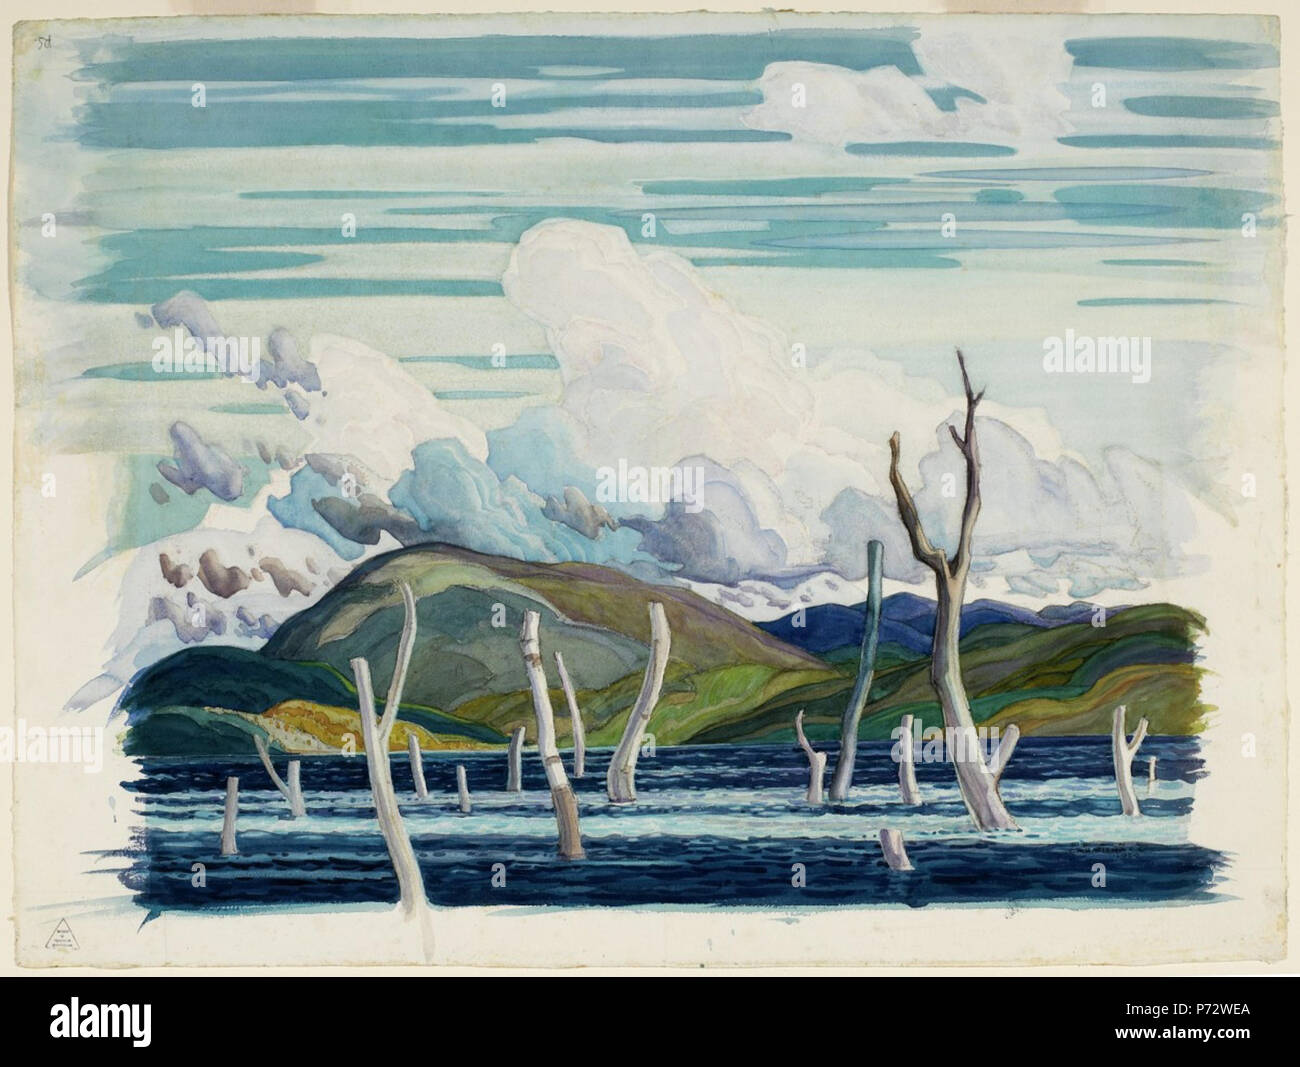 English: Franklin Carmichael, Wabajisik Drowned Land, 1929, watercolour and gouache over charcoal on wove paper, 51.8 x 69.8 cm . 5 April 2006, 14:05:32 3 Franklin Carmichael - Wabajisik Drowned Land Stock Photo